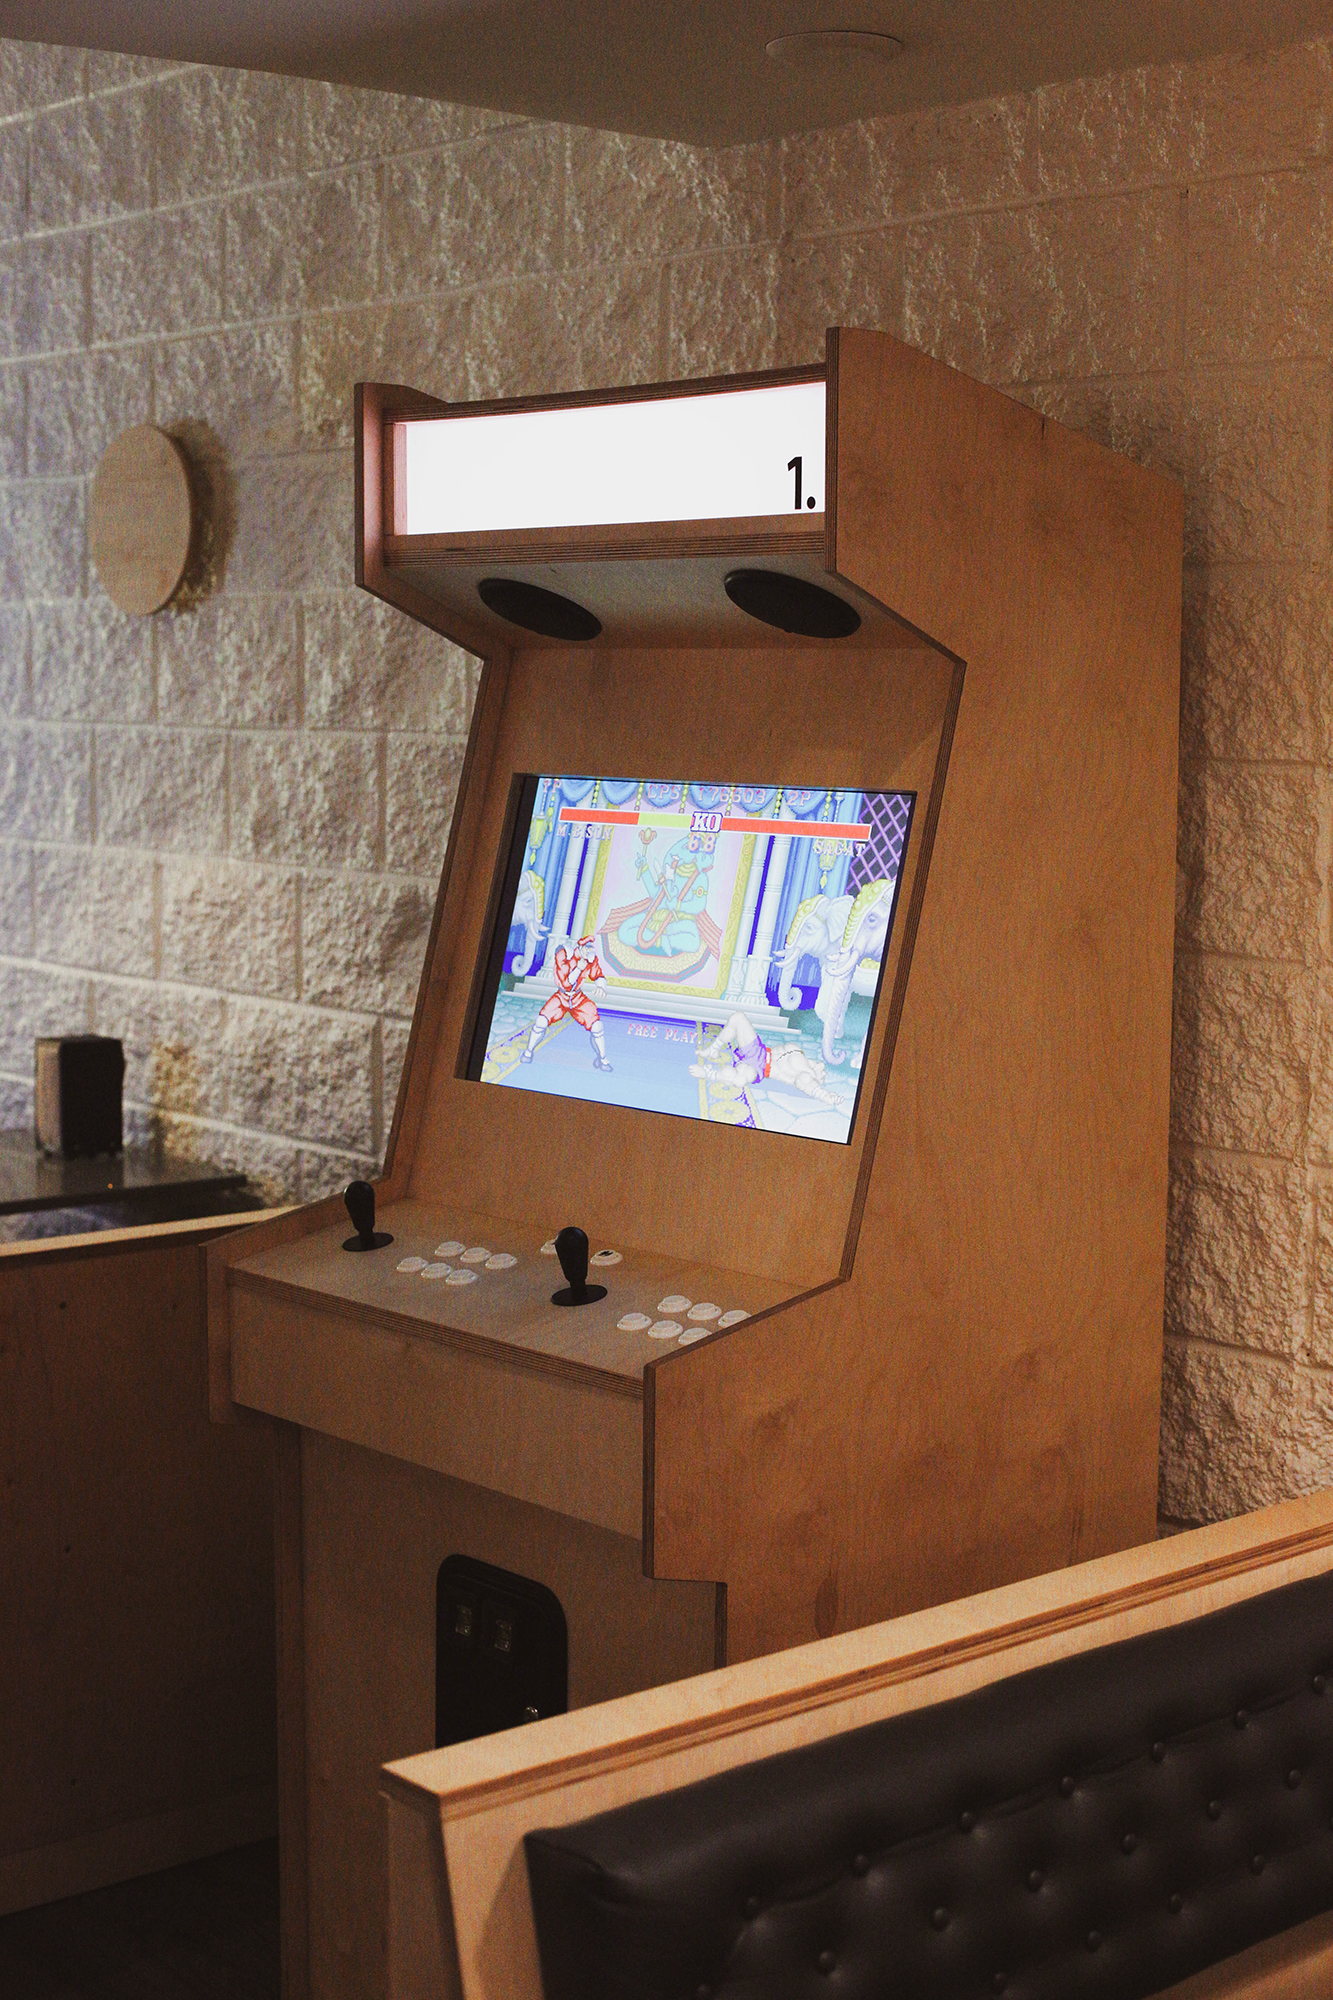 stand-alone arcade machine featuring early-90s favourites like Mortal Kombat and, appropriately, 1982's  Super  Burger Time